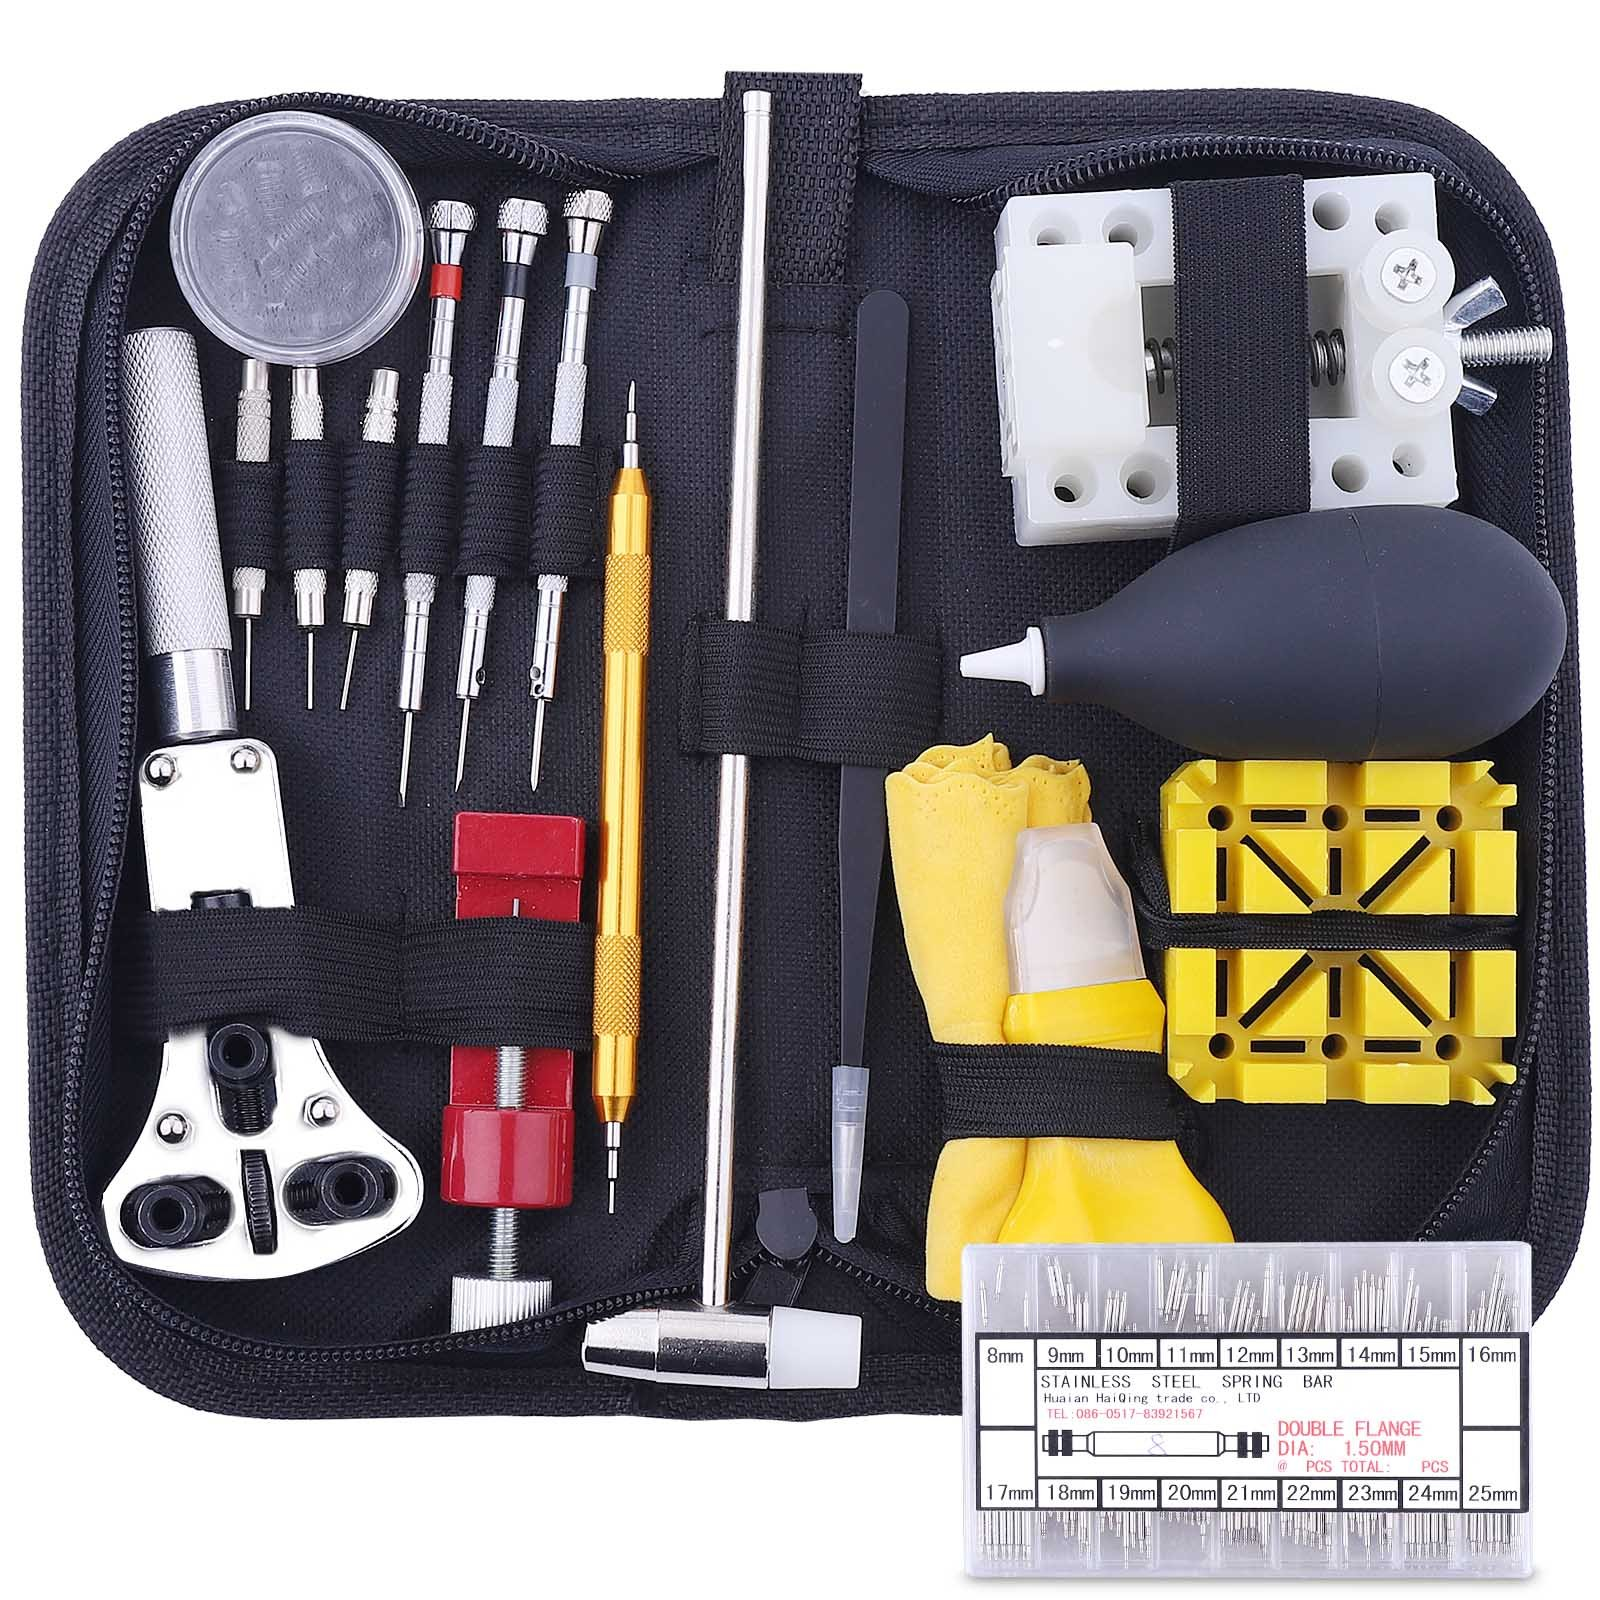 178PCS Watch Repair Tool Kit, Professional Watch Band Link Pin Tool Set with Carrying Case